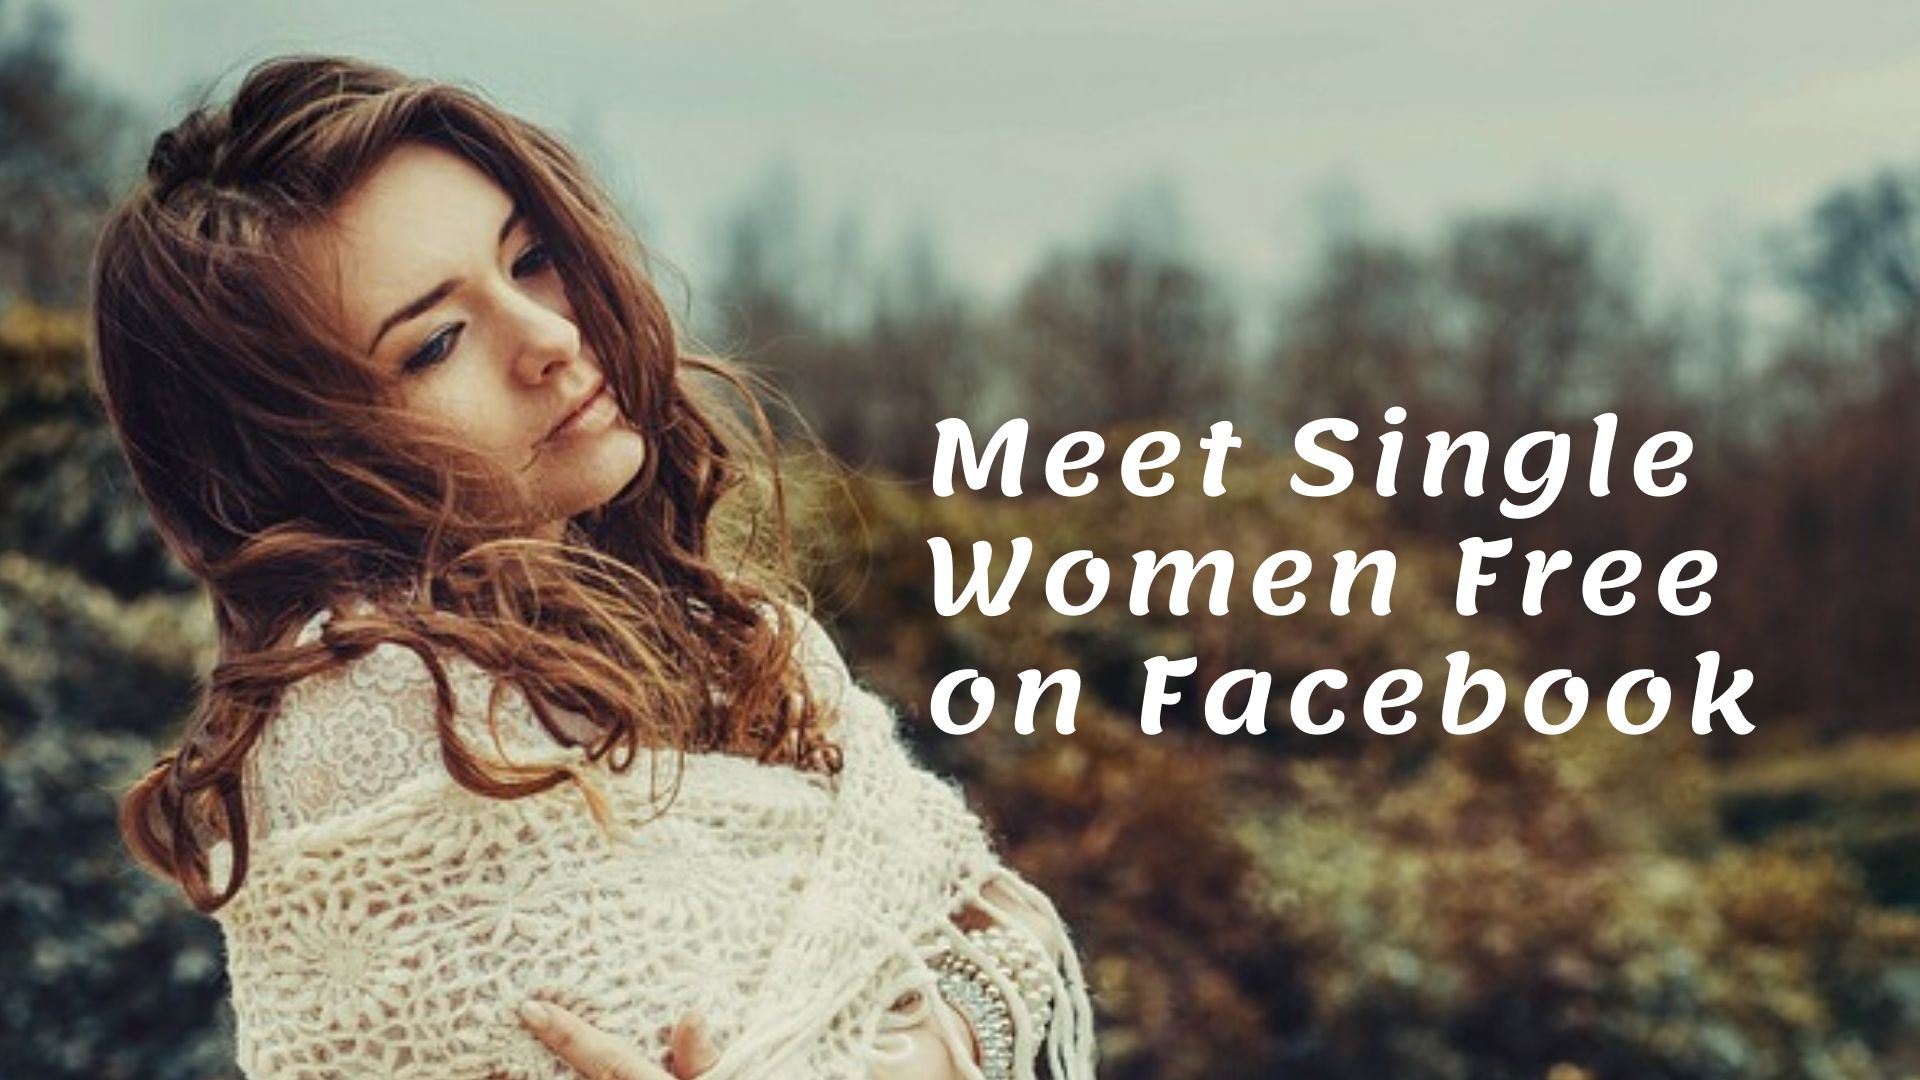 Meet Single Women Free on Facebook